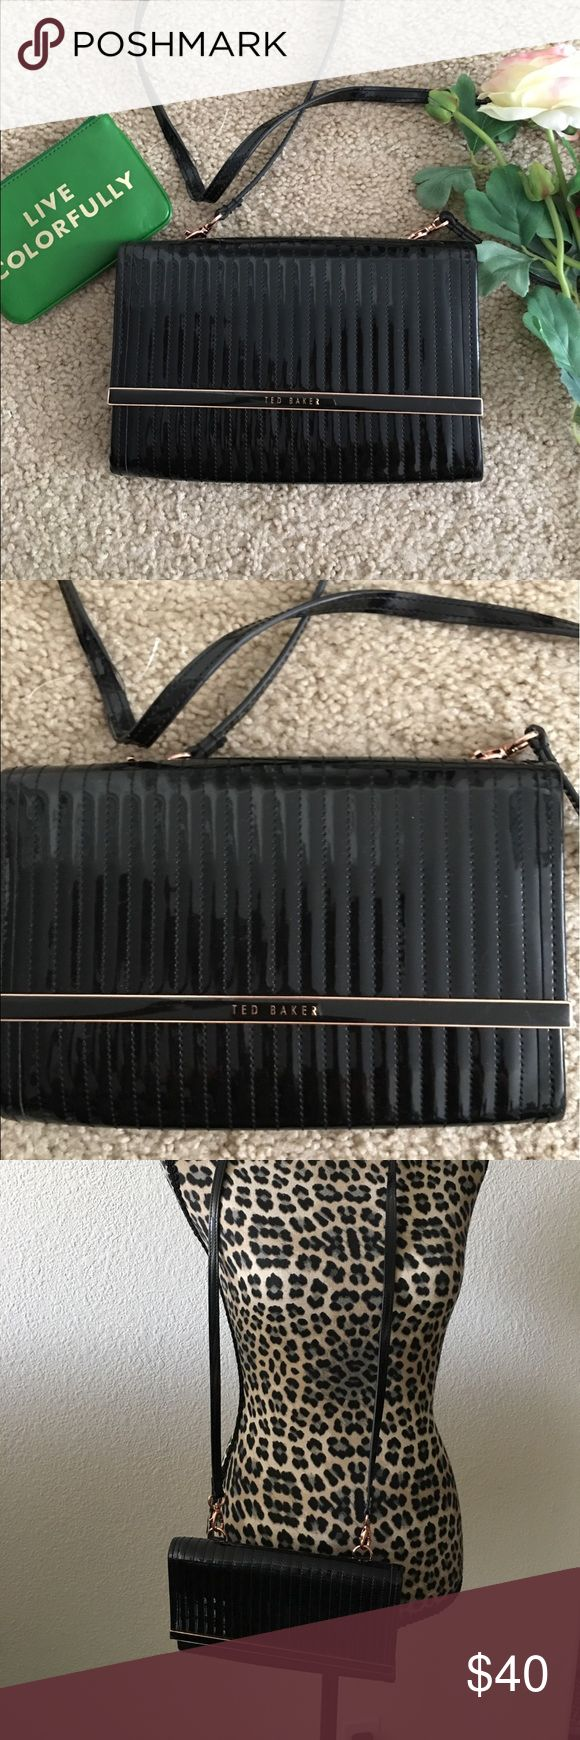 Ted Baker Crossbody Purse Good used condition Ted Baker Crossbody purse. Color is black and is Patent. Shows minor wear but not too noticeable such as mild scuffing. ❤ Baker by Ted Baker Bags Crossbody Bags